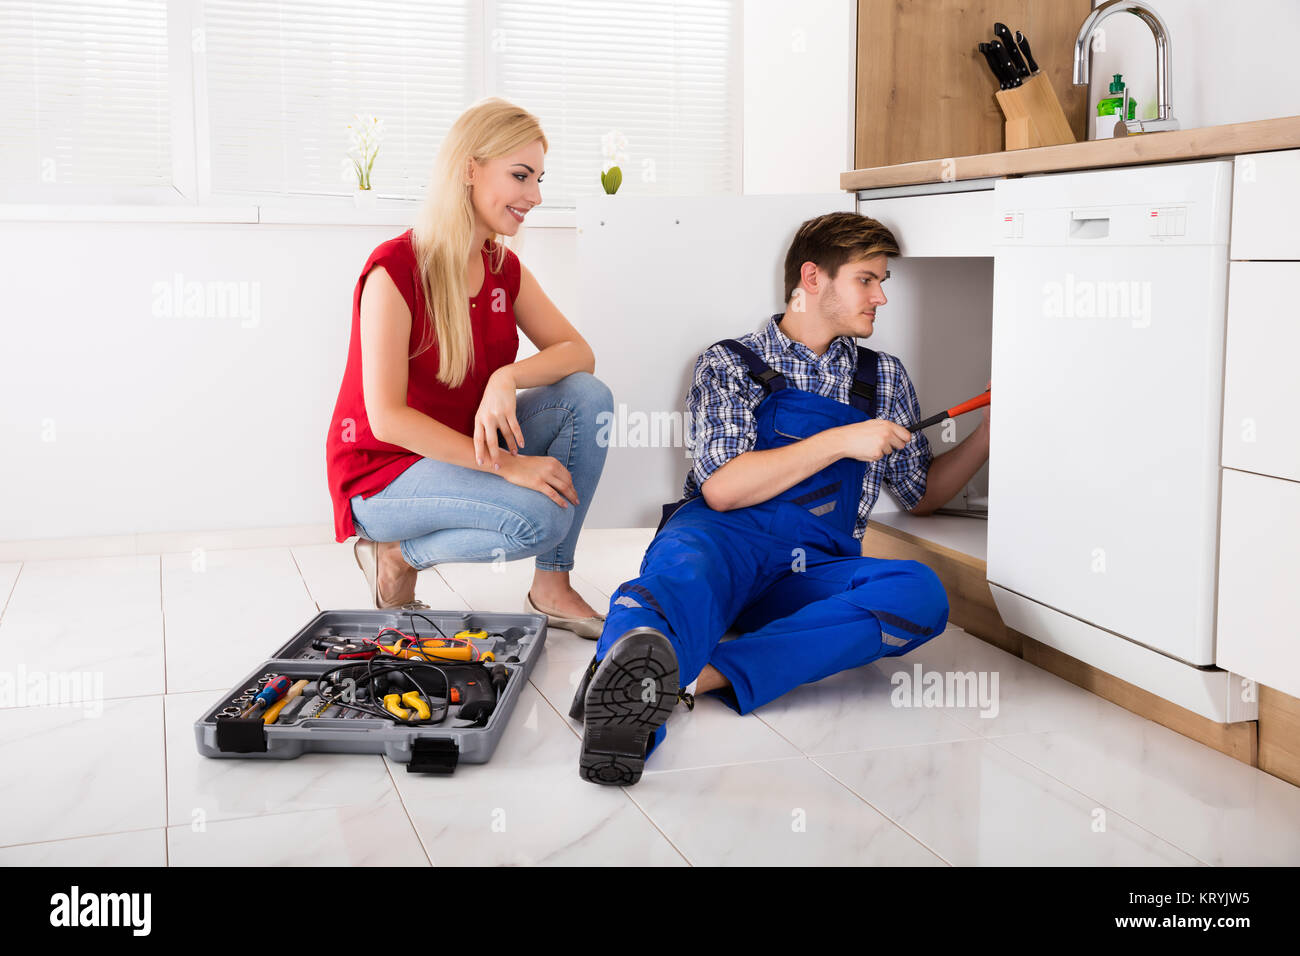 Woman Looking At Male Plumber Fixing Kitchen Sink - Stock Image